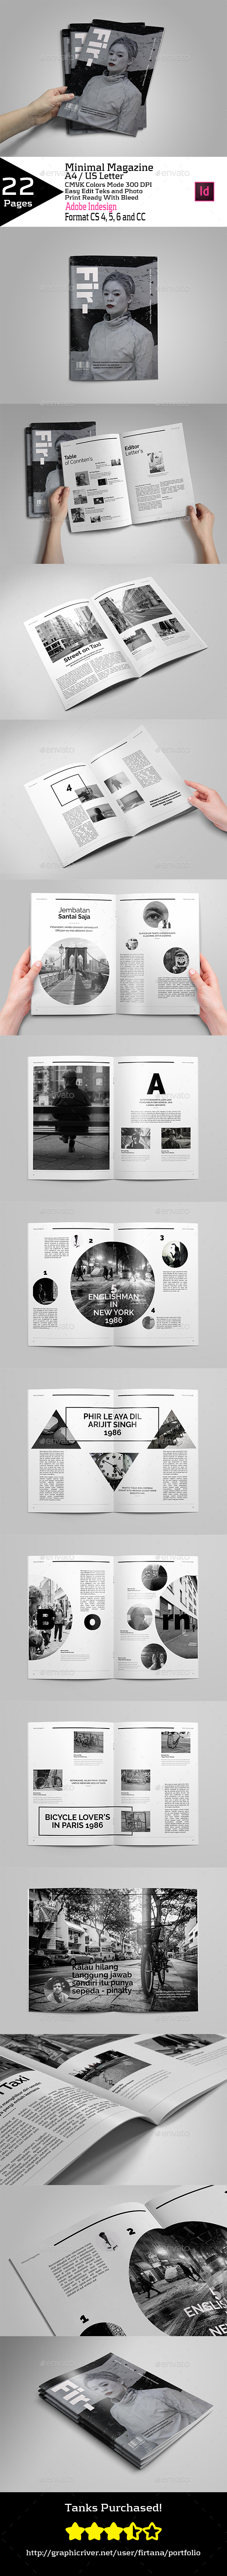 Minimal Magazine A4/US Letter - Magazines Print Templates